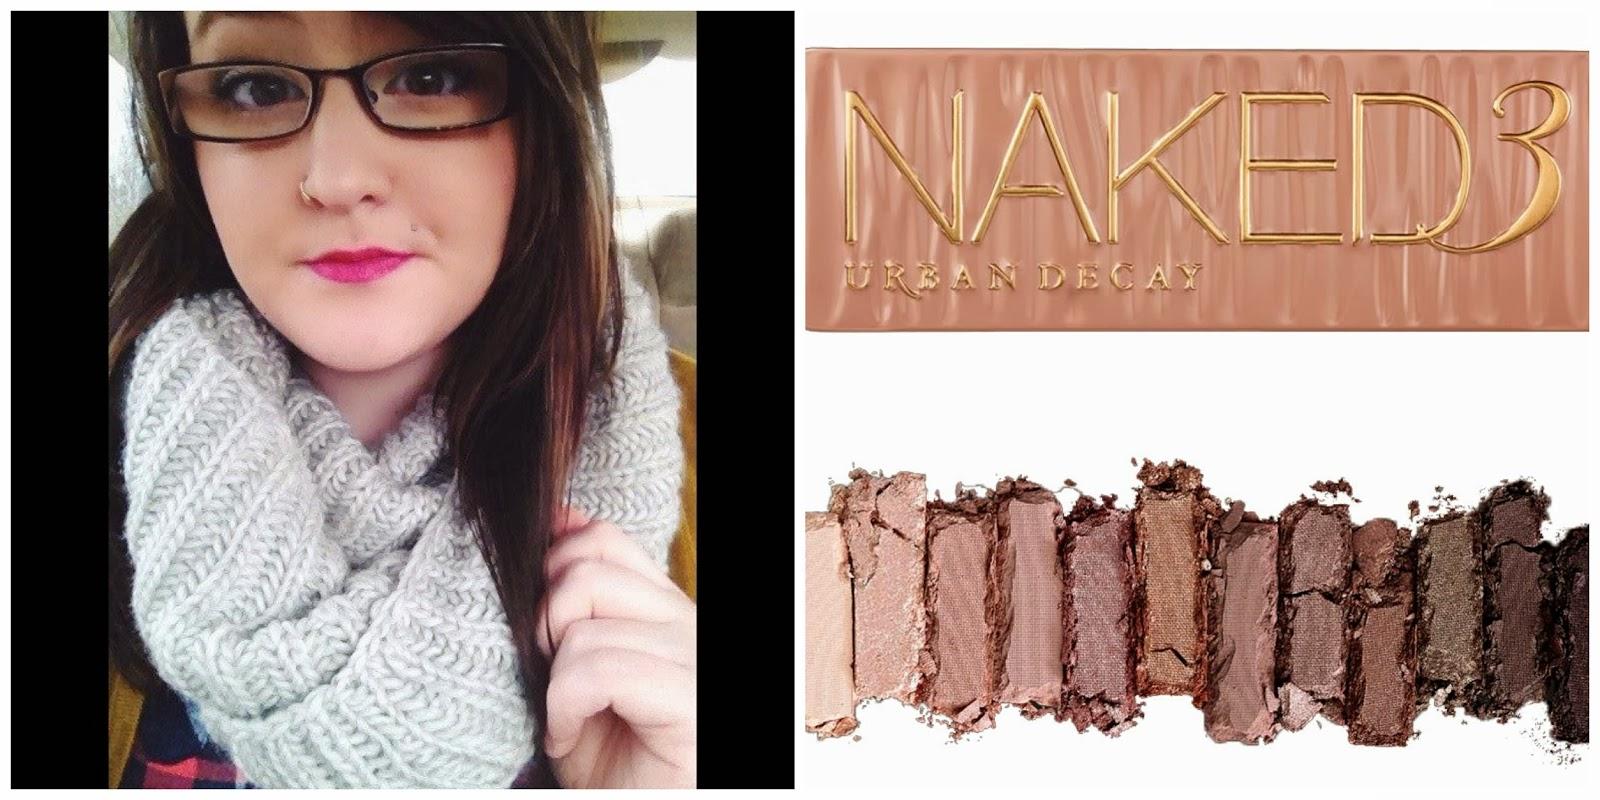 WIN (ended) - Naked 3 by Urban Decay giveaway! (or paypal for non US winner)